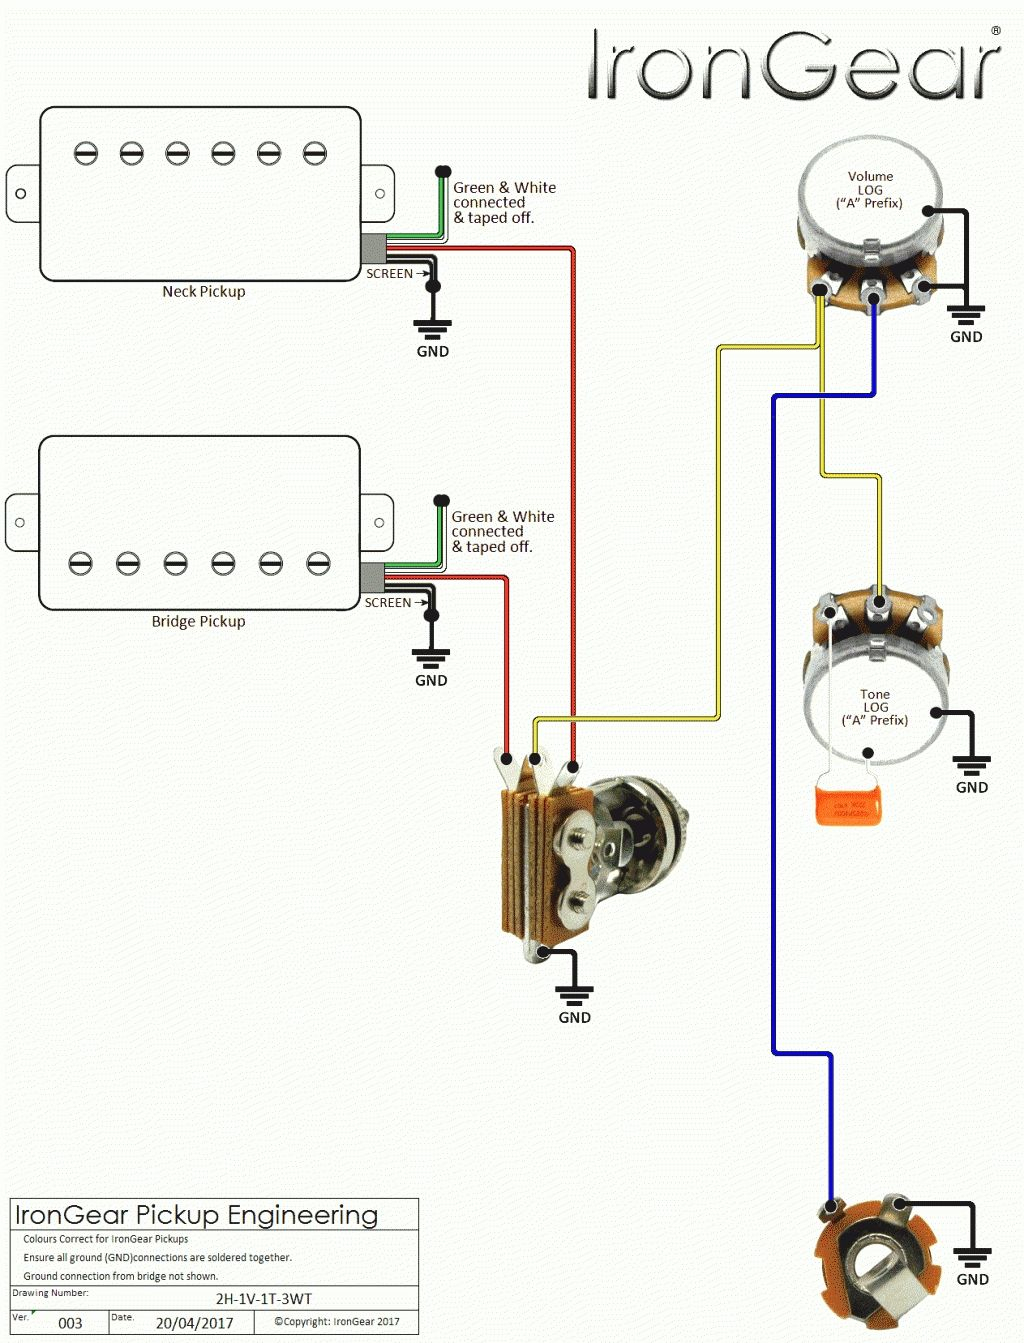 Wiring-Diagram-For-Electric-Bass-Guitar & P Bass Wiring Diagram - P Bass Wiring Diagram